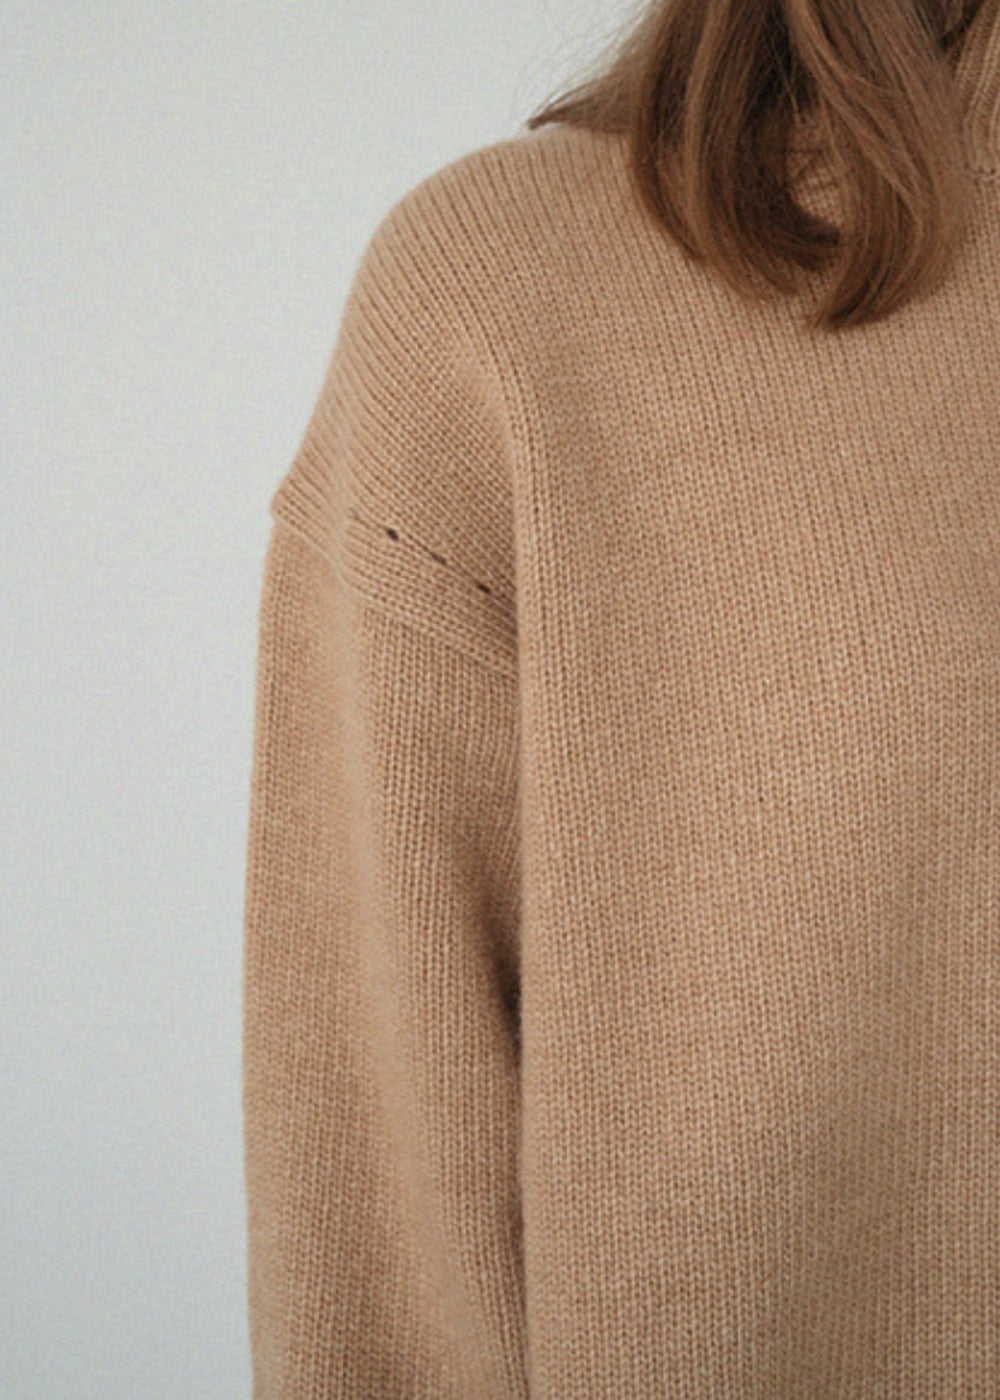 LE CASHMERE TURTLENECK KNIT CAMEL